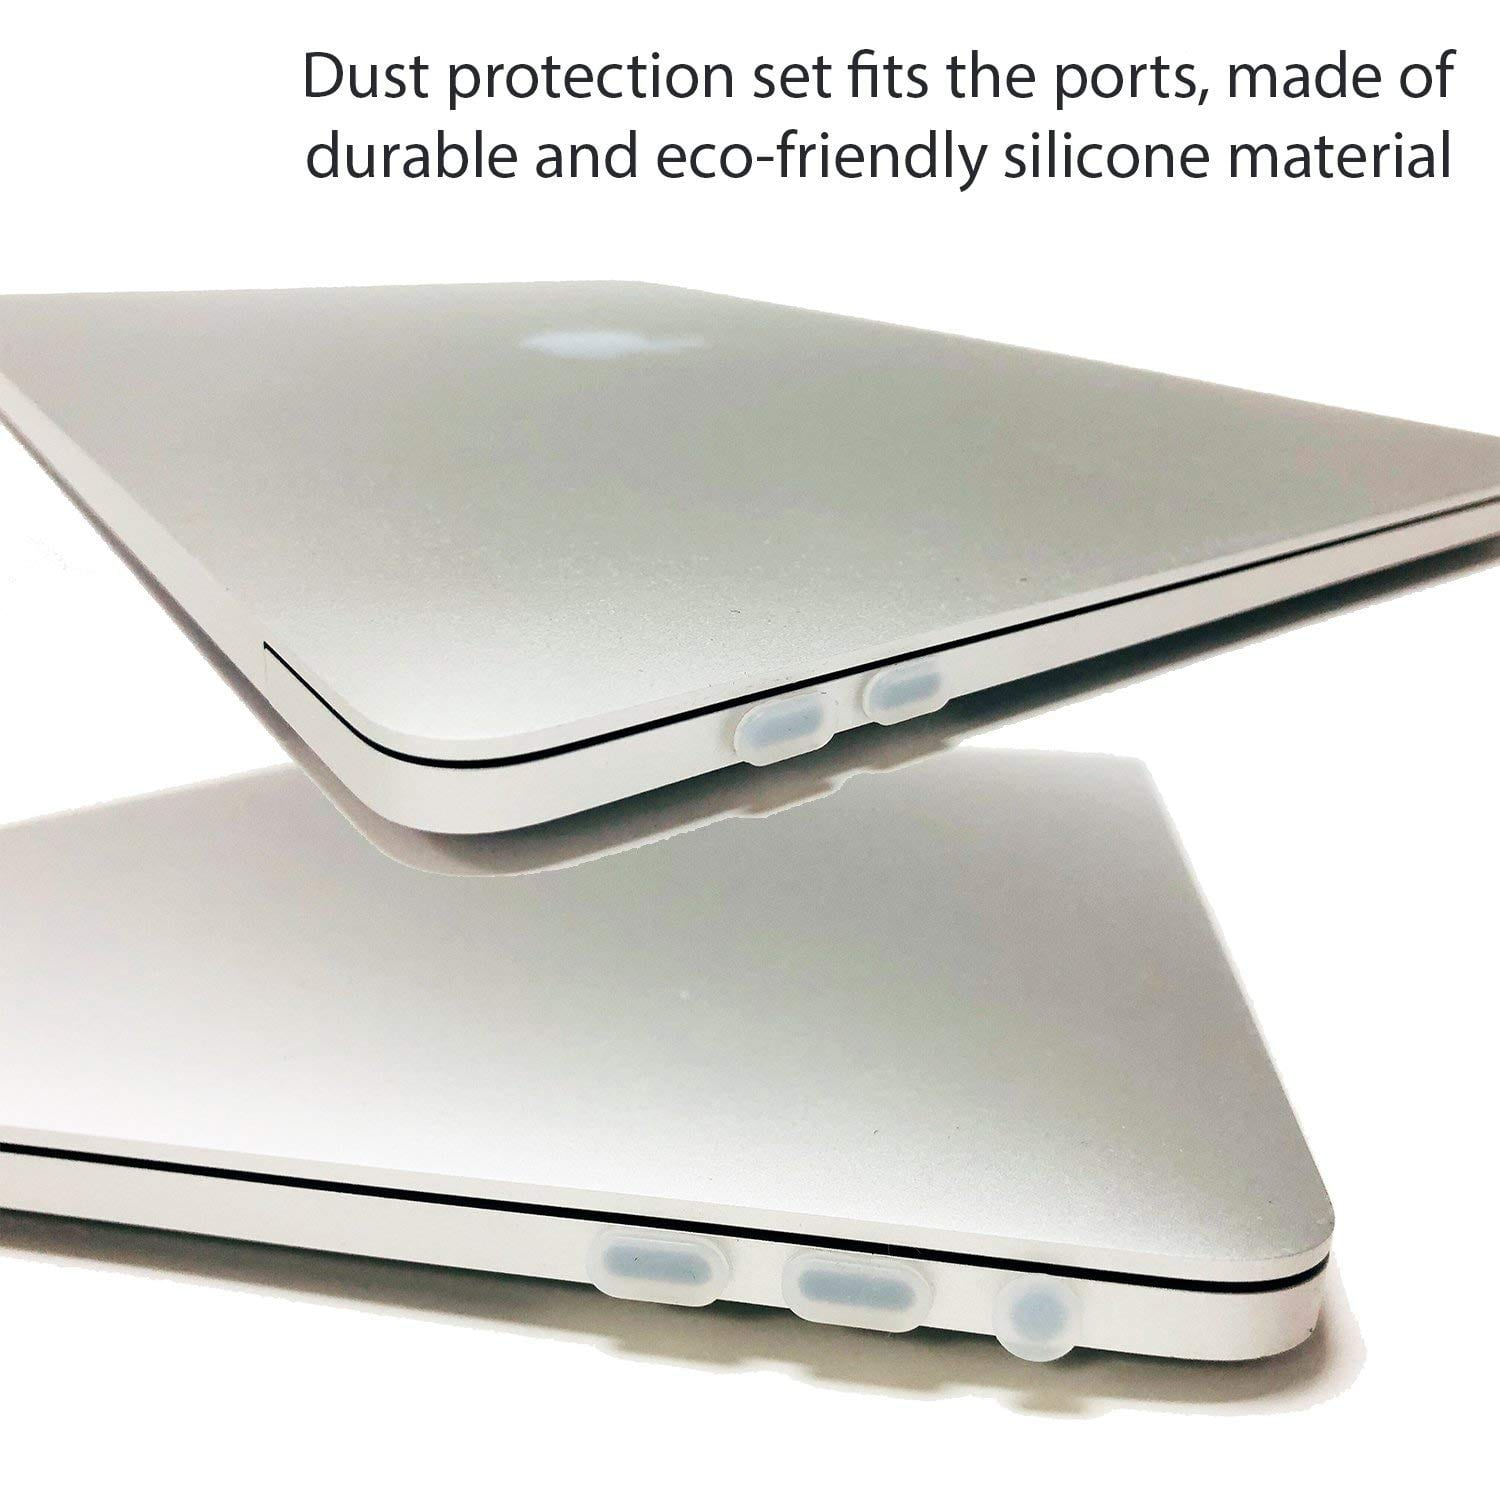 dust protection macbook